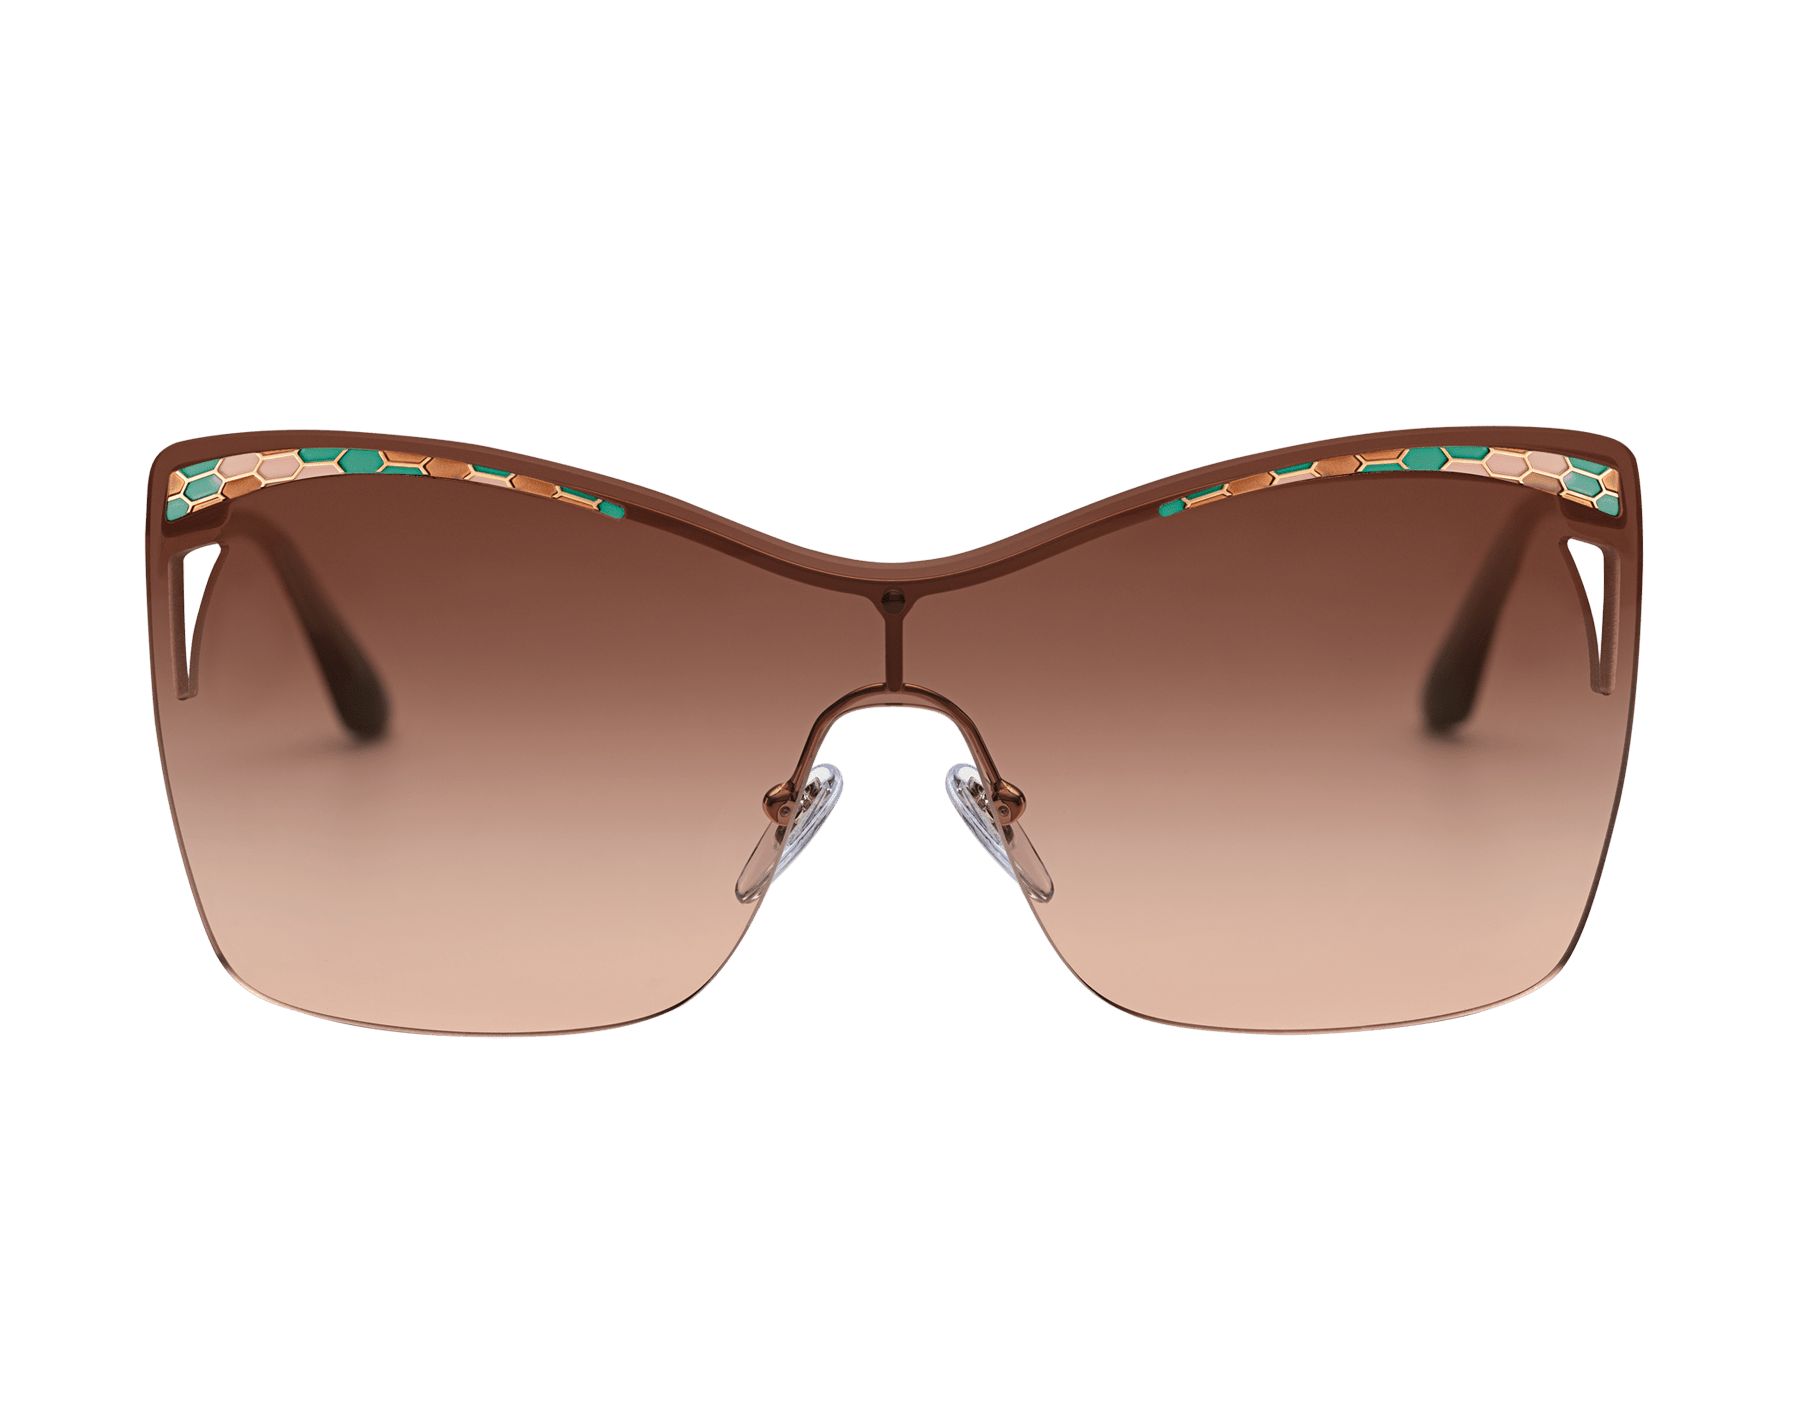 Bulgari Serpenti eye-bite metal shield sunglasses. 903982 image 2